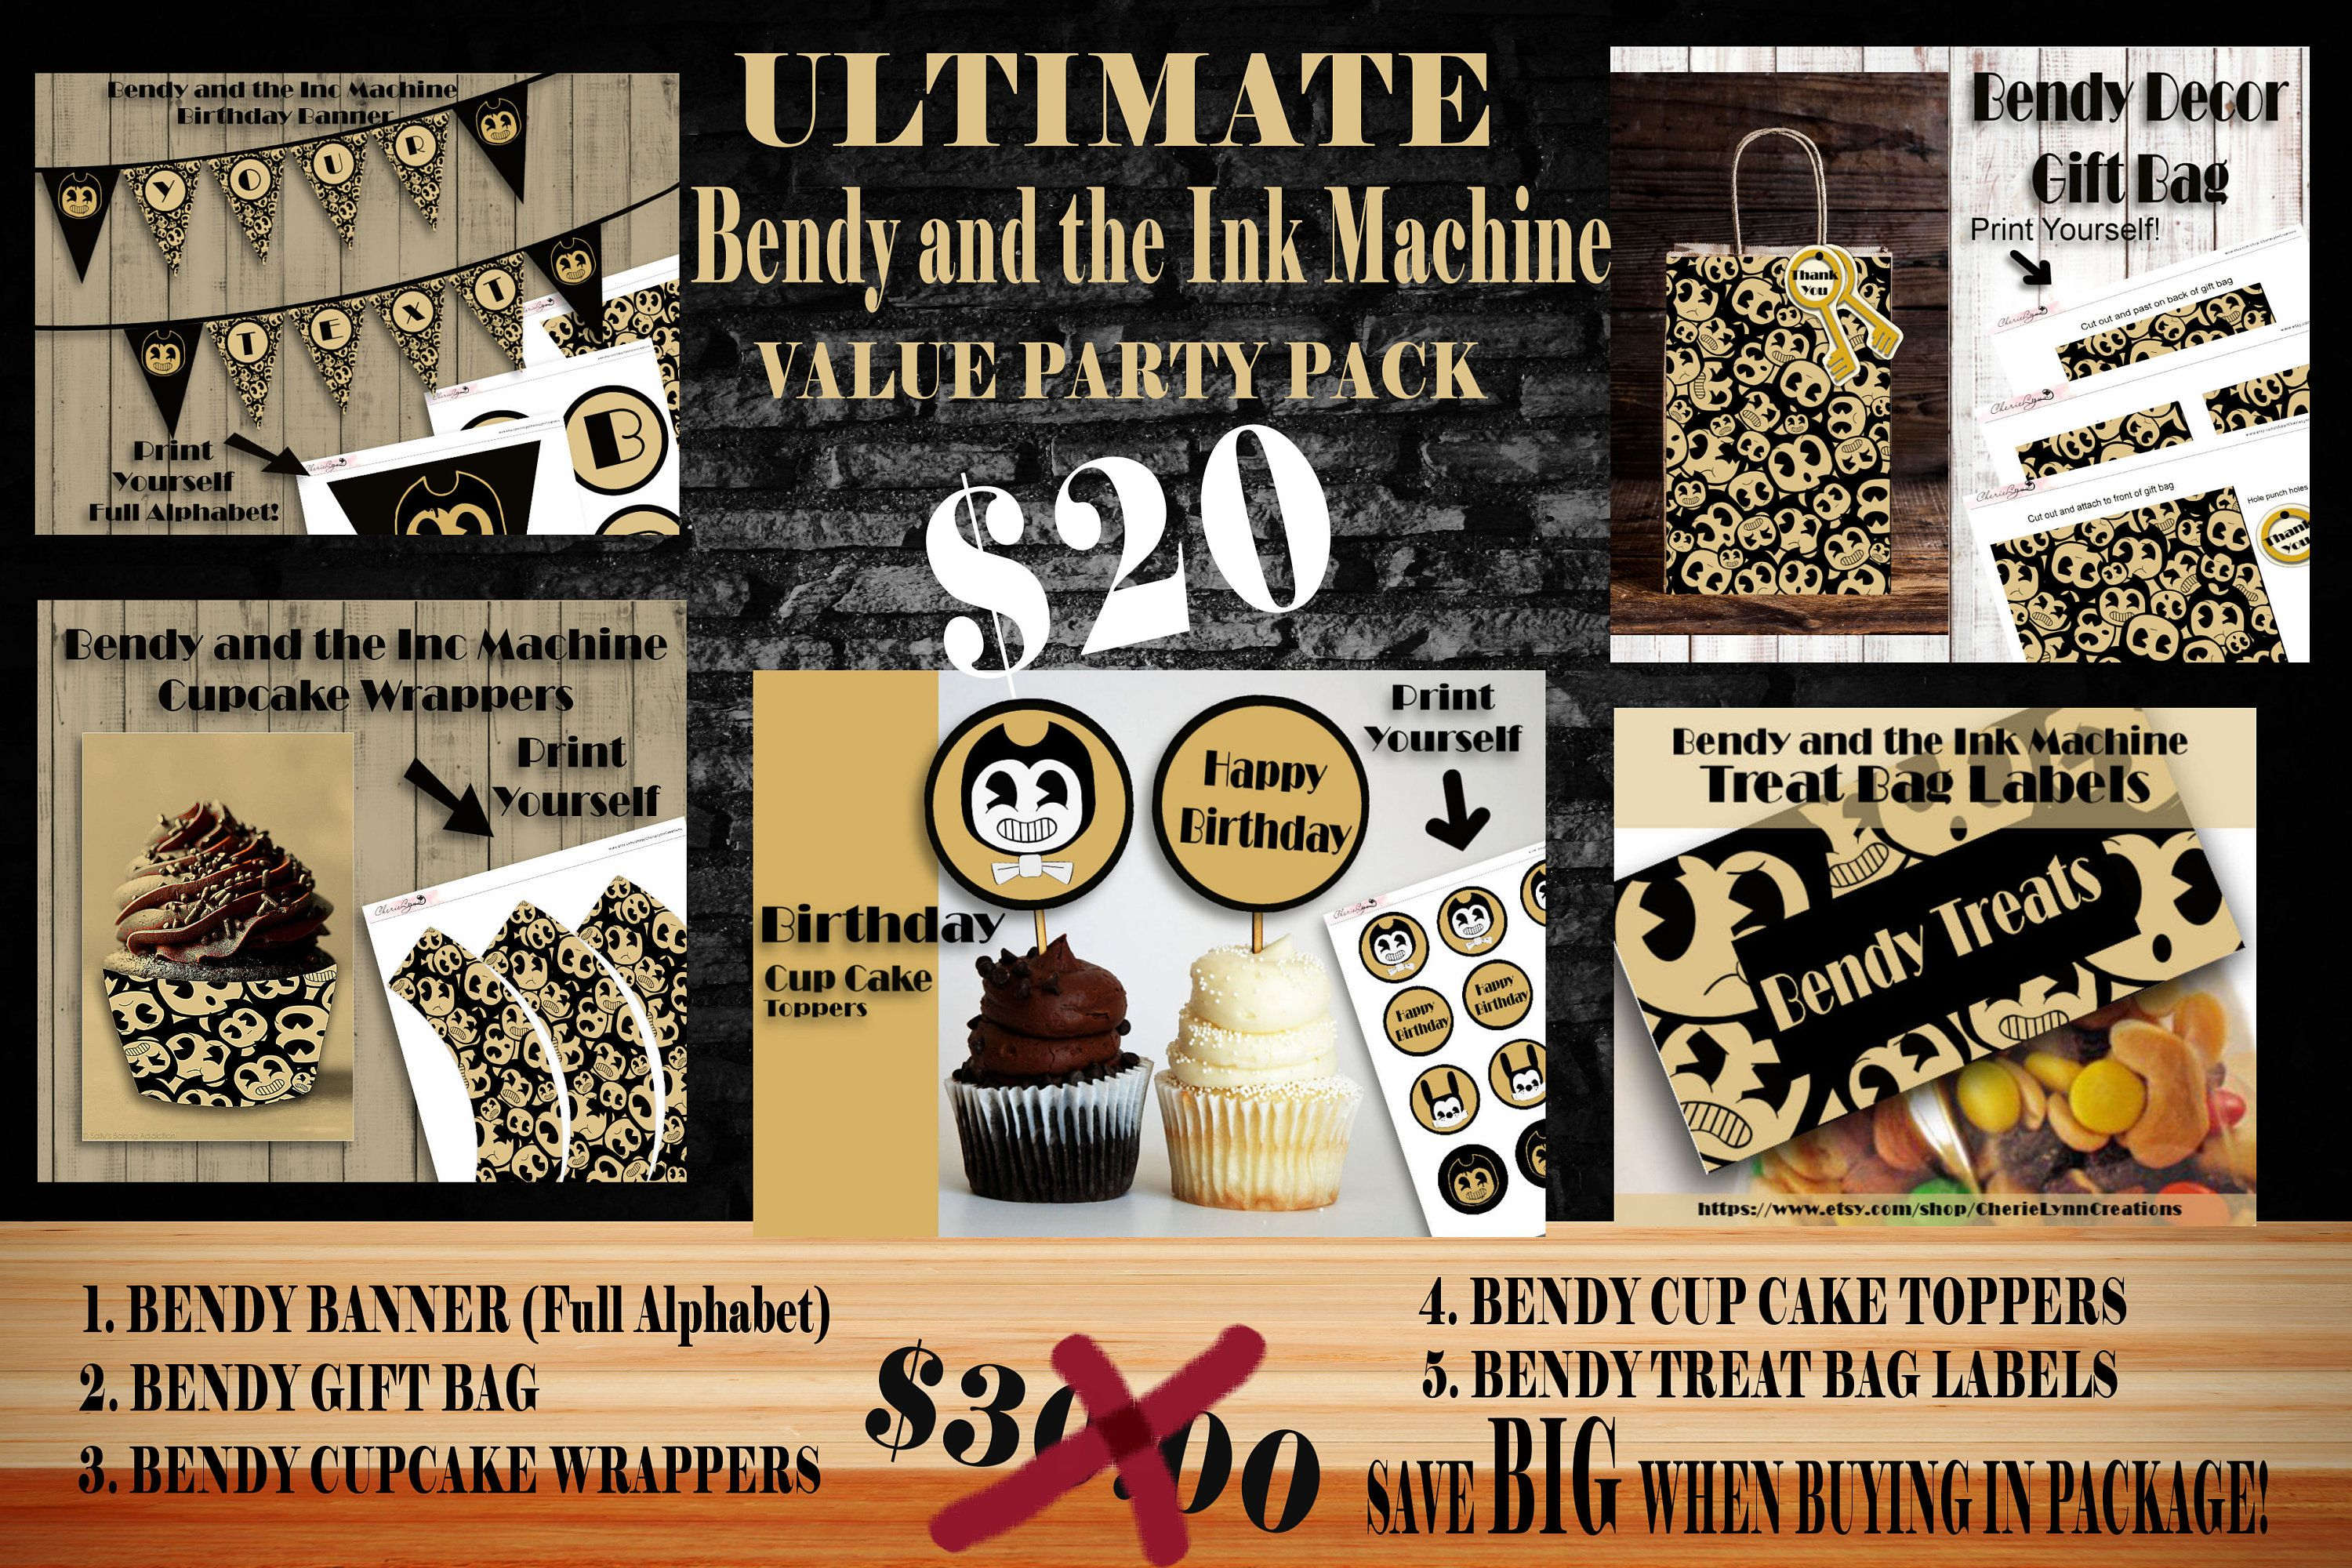 Bendy And The Ink Machine, Bendy Ultimate Package, Bendy Gift